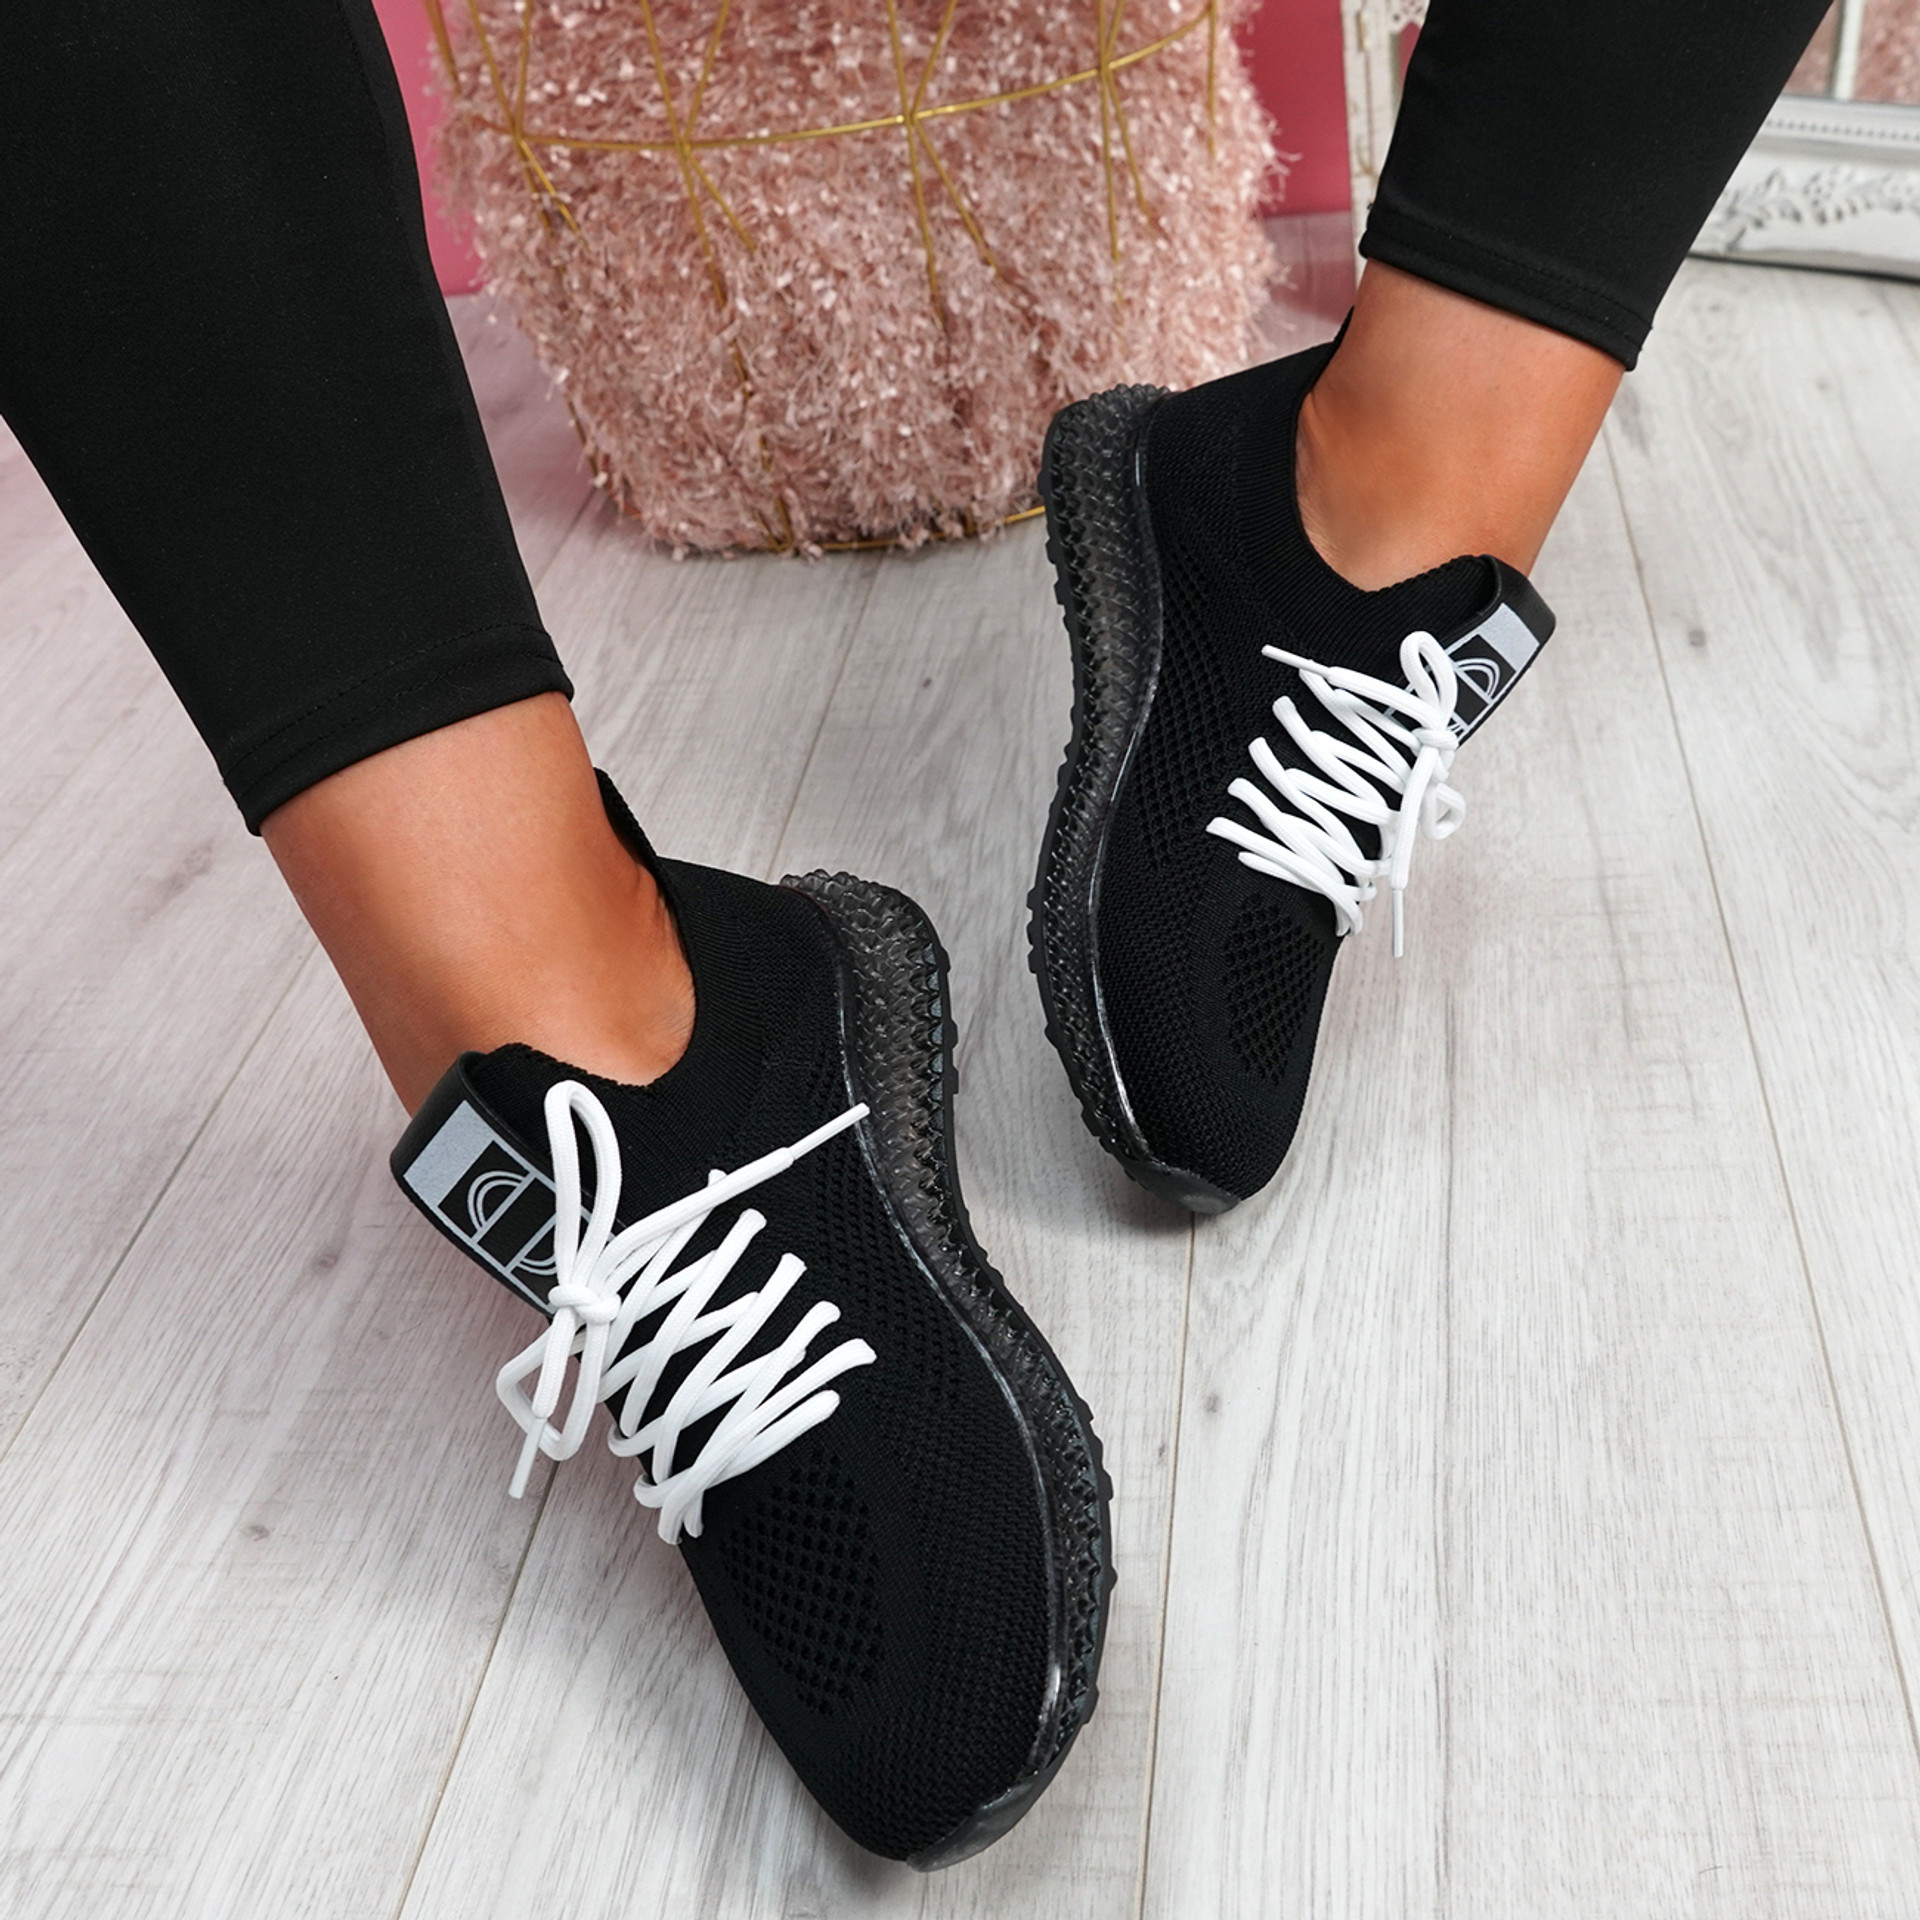 Solly Black Lace Up Sport Trainers